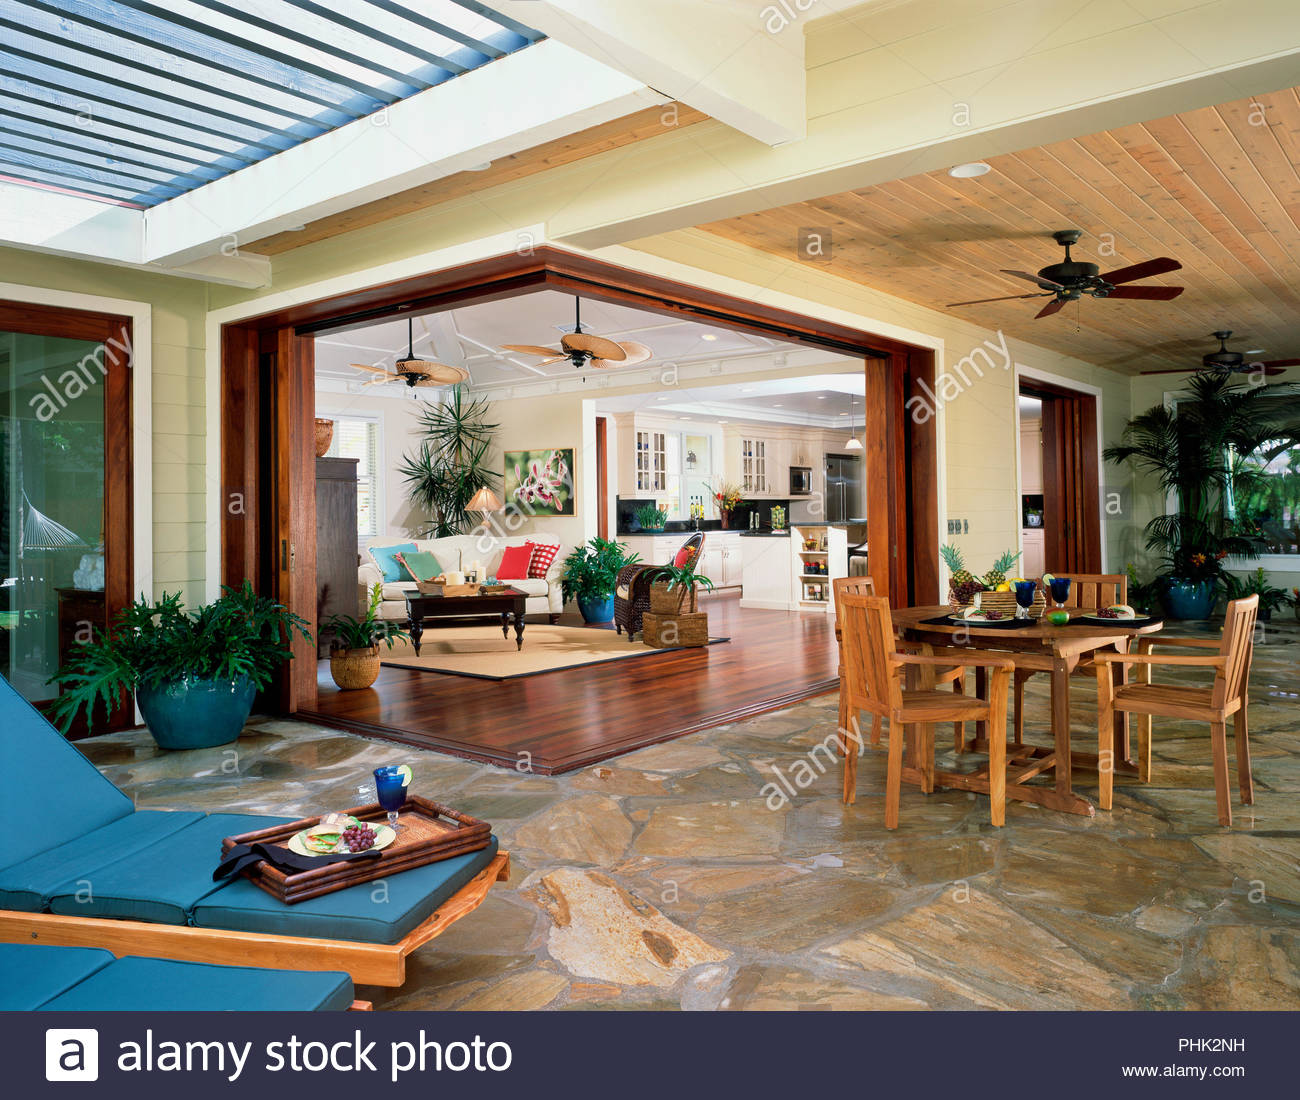 Patio and living room in house - Stock Image